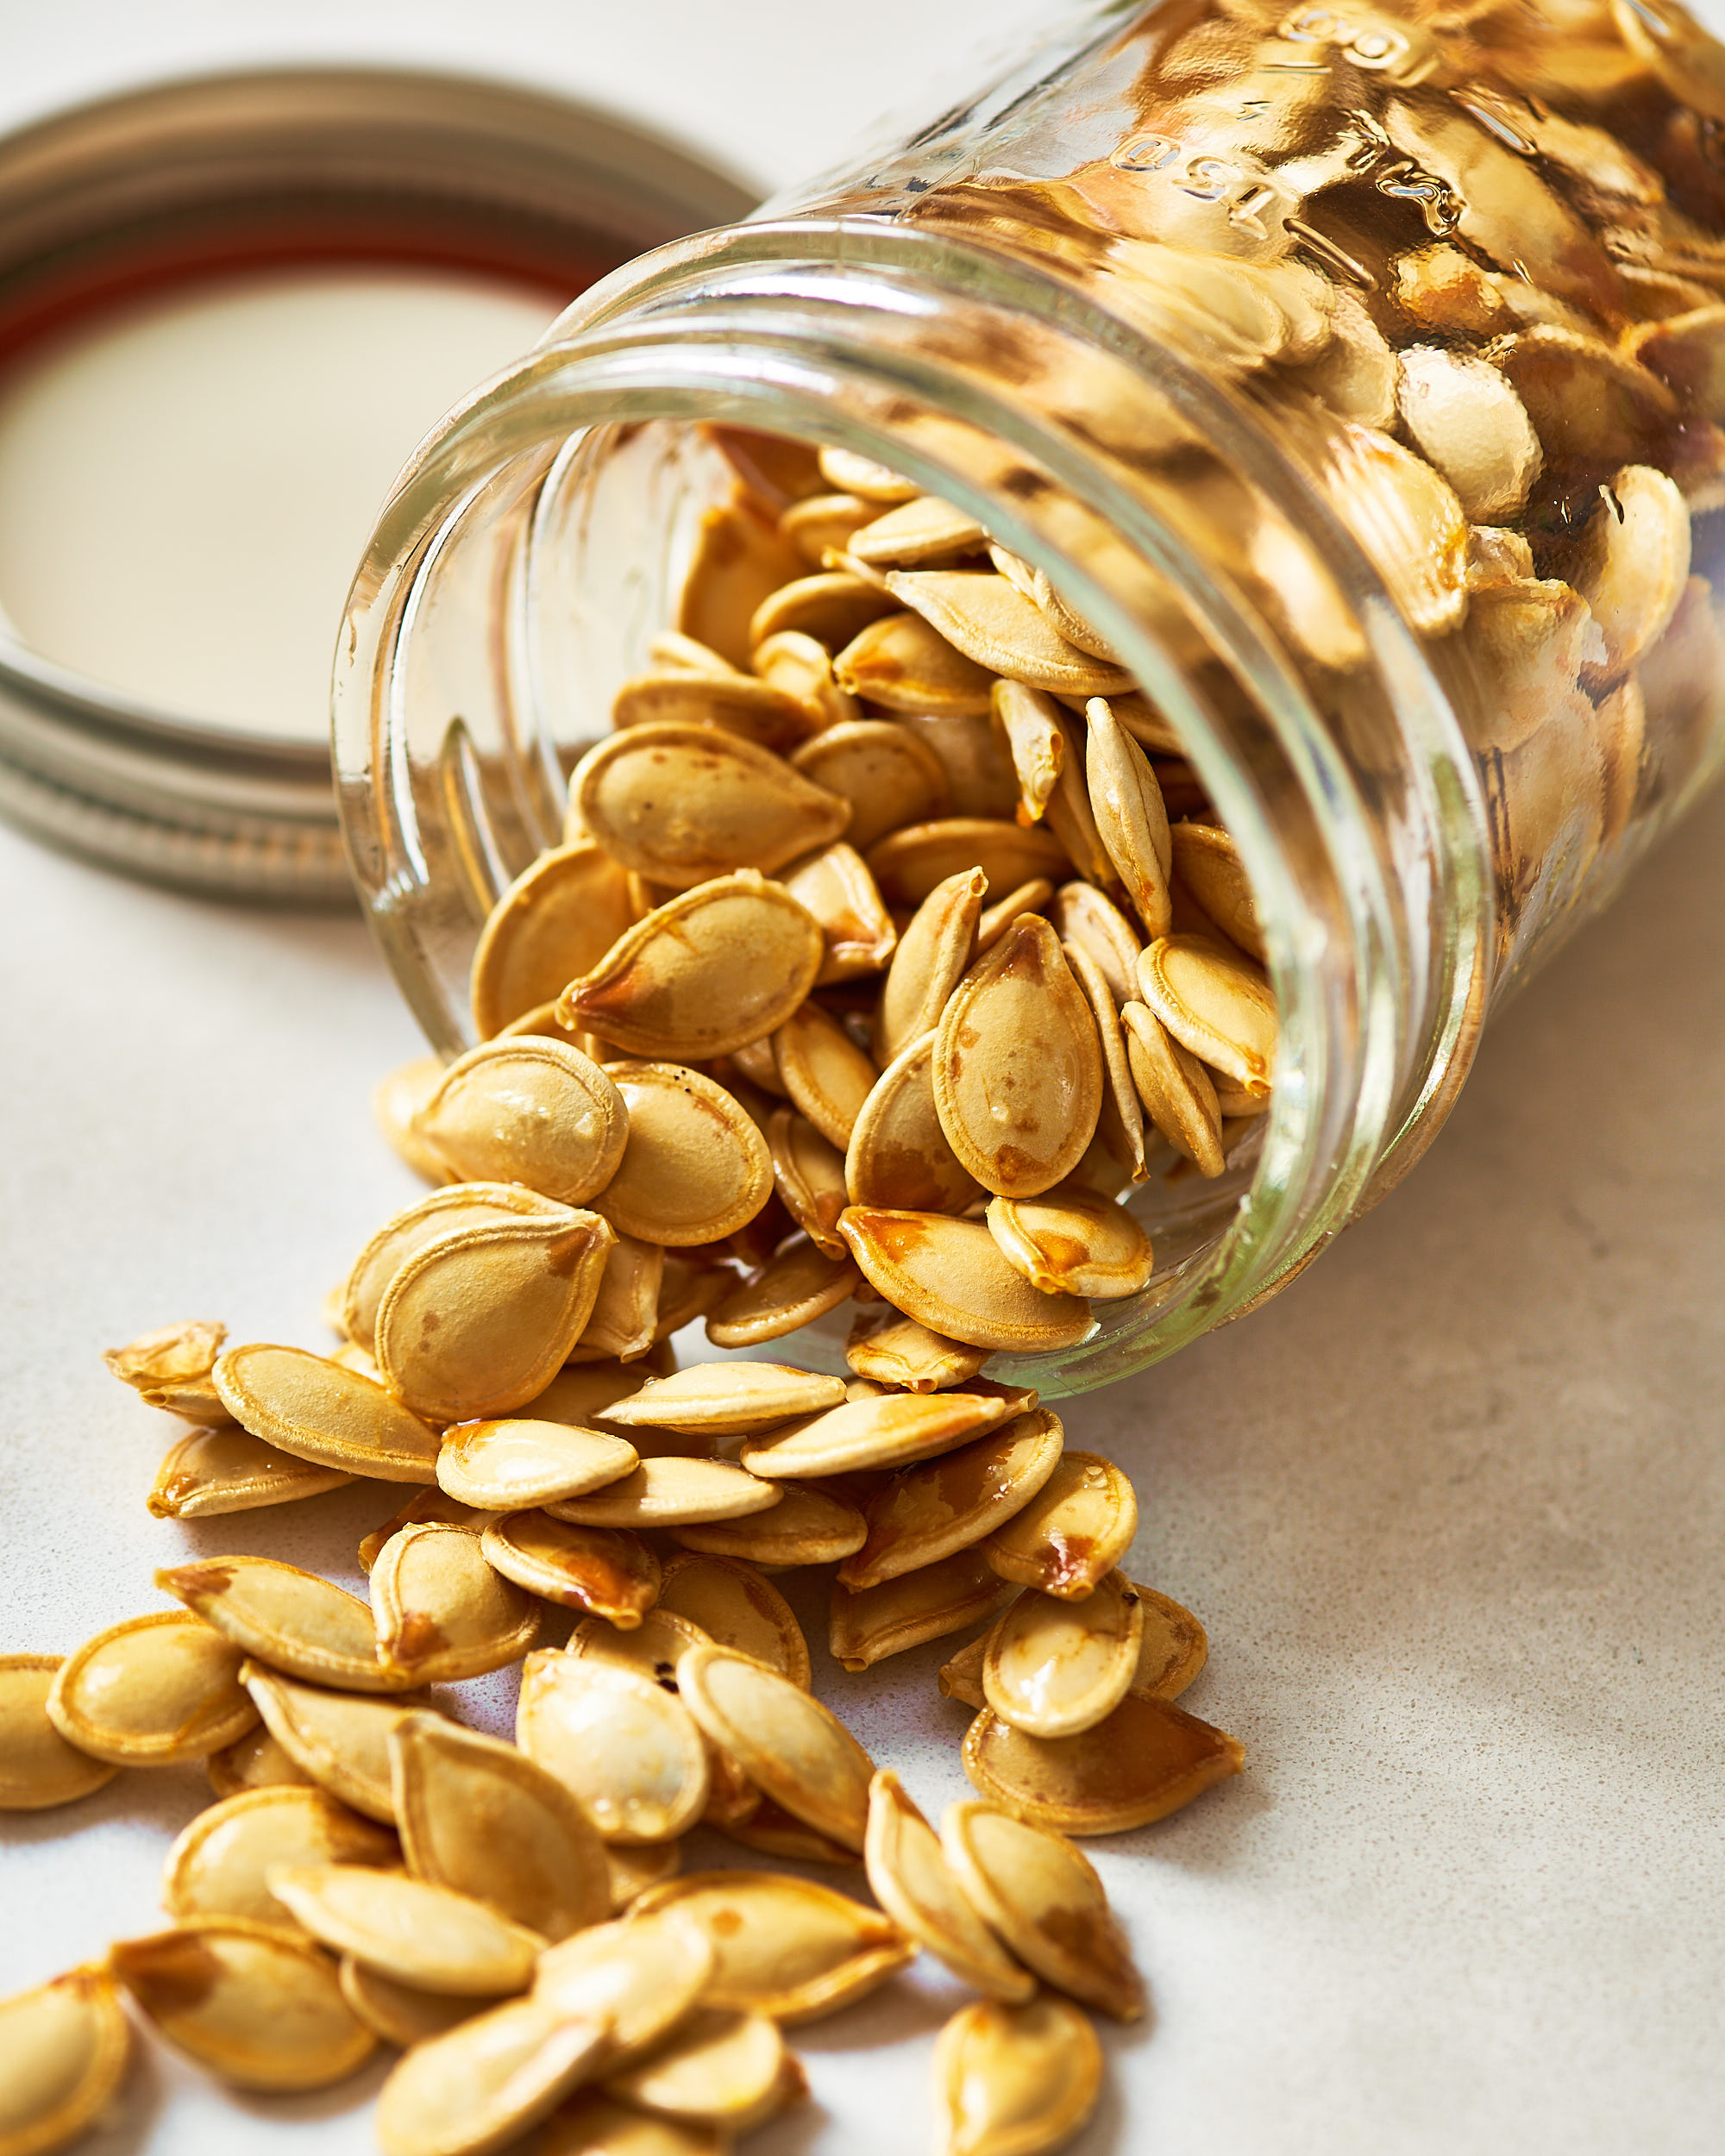 A Smart Tip for Better Roasted Pumpkin Seeds | Kitchn